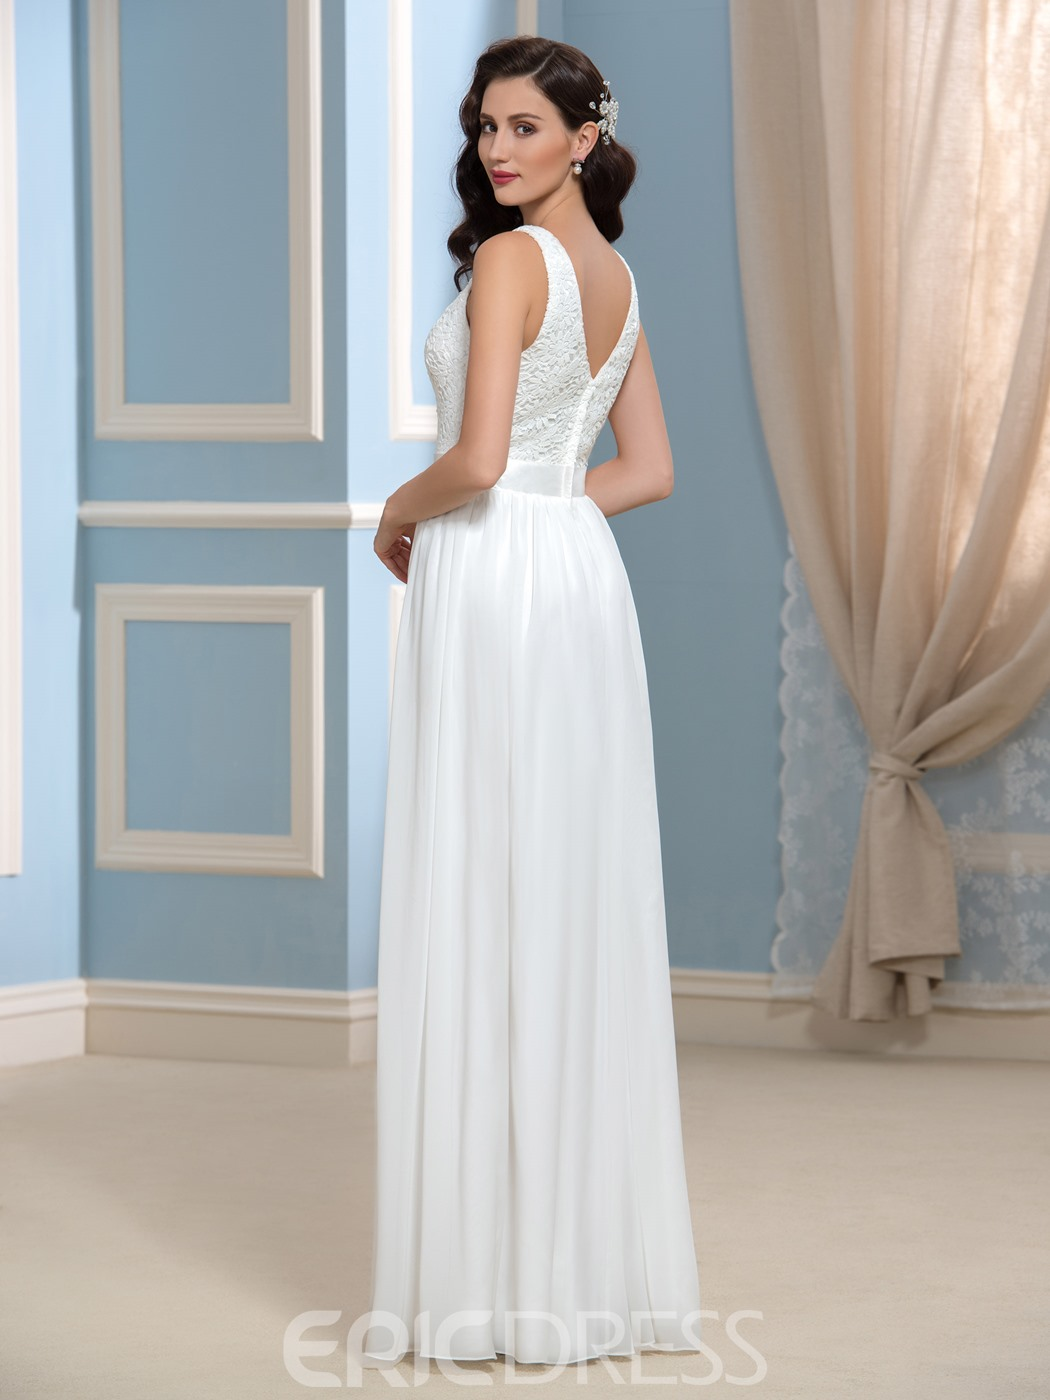 Ericdress Simple A Line Lace Long Wedding Dress